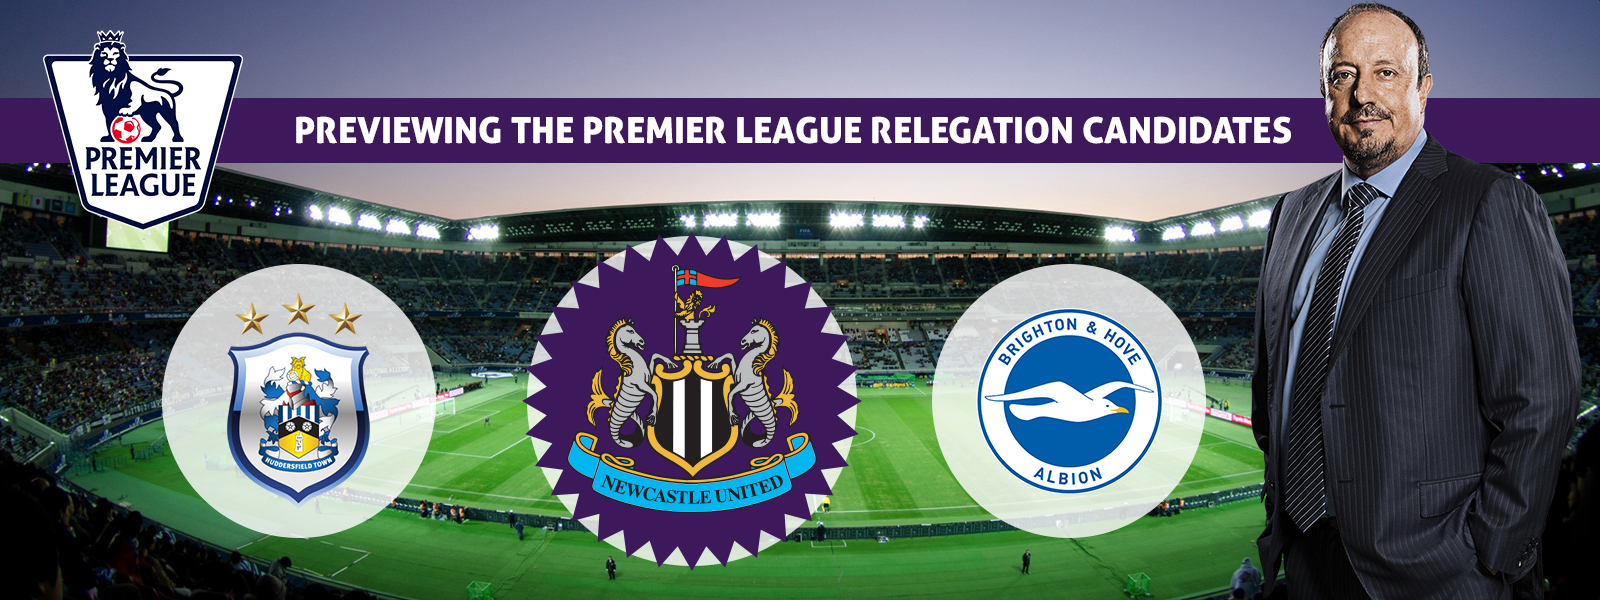 Previewing the Premier League Relegation Candidates